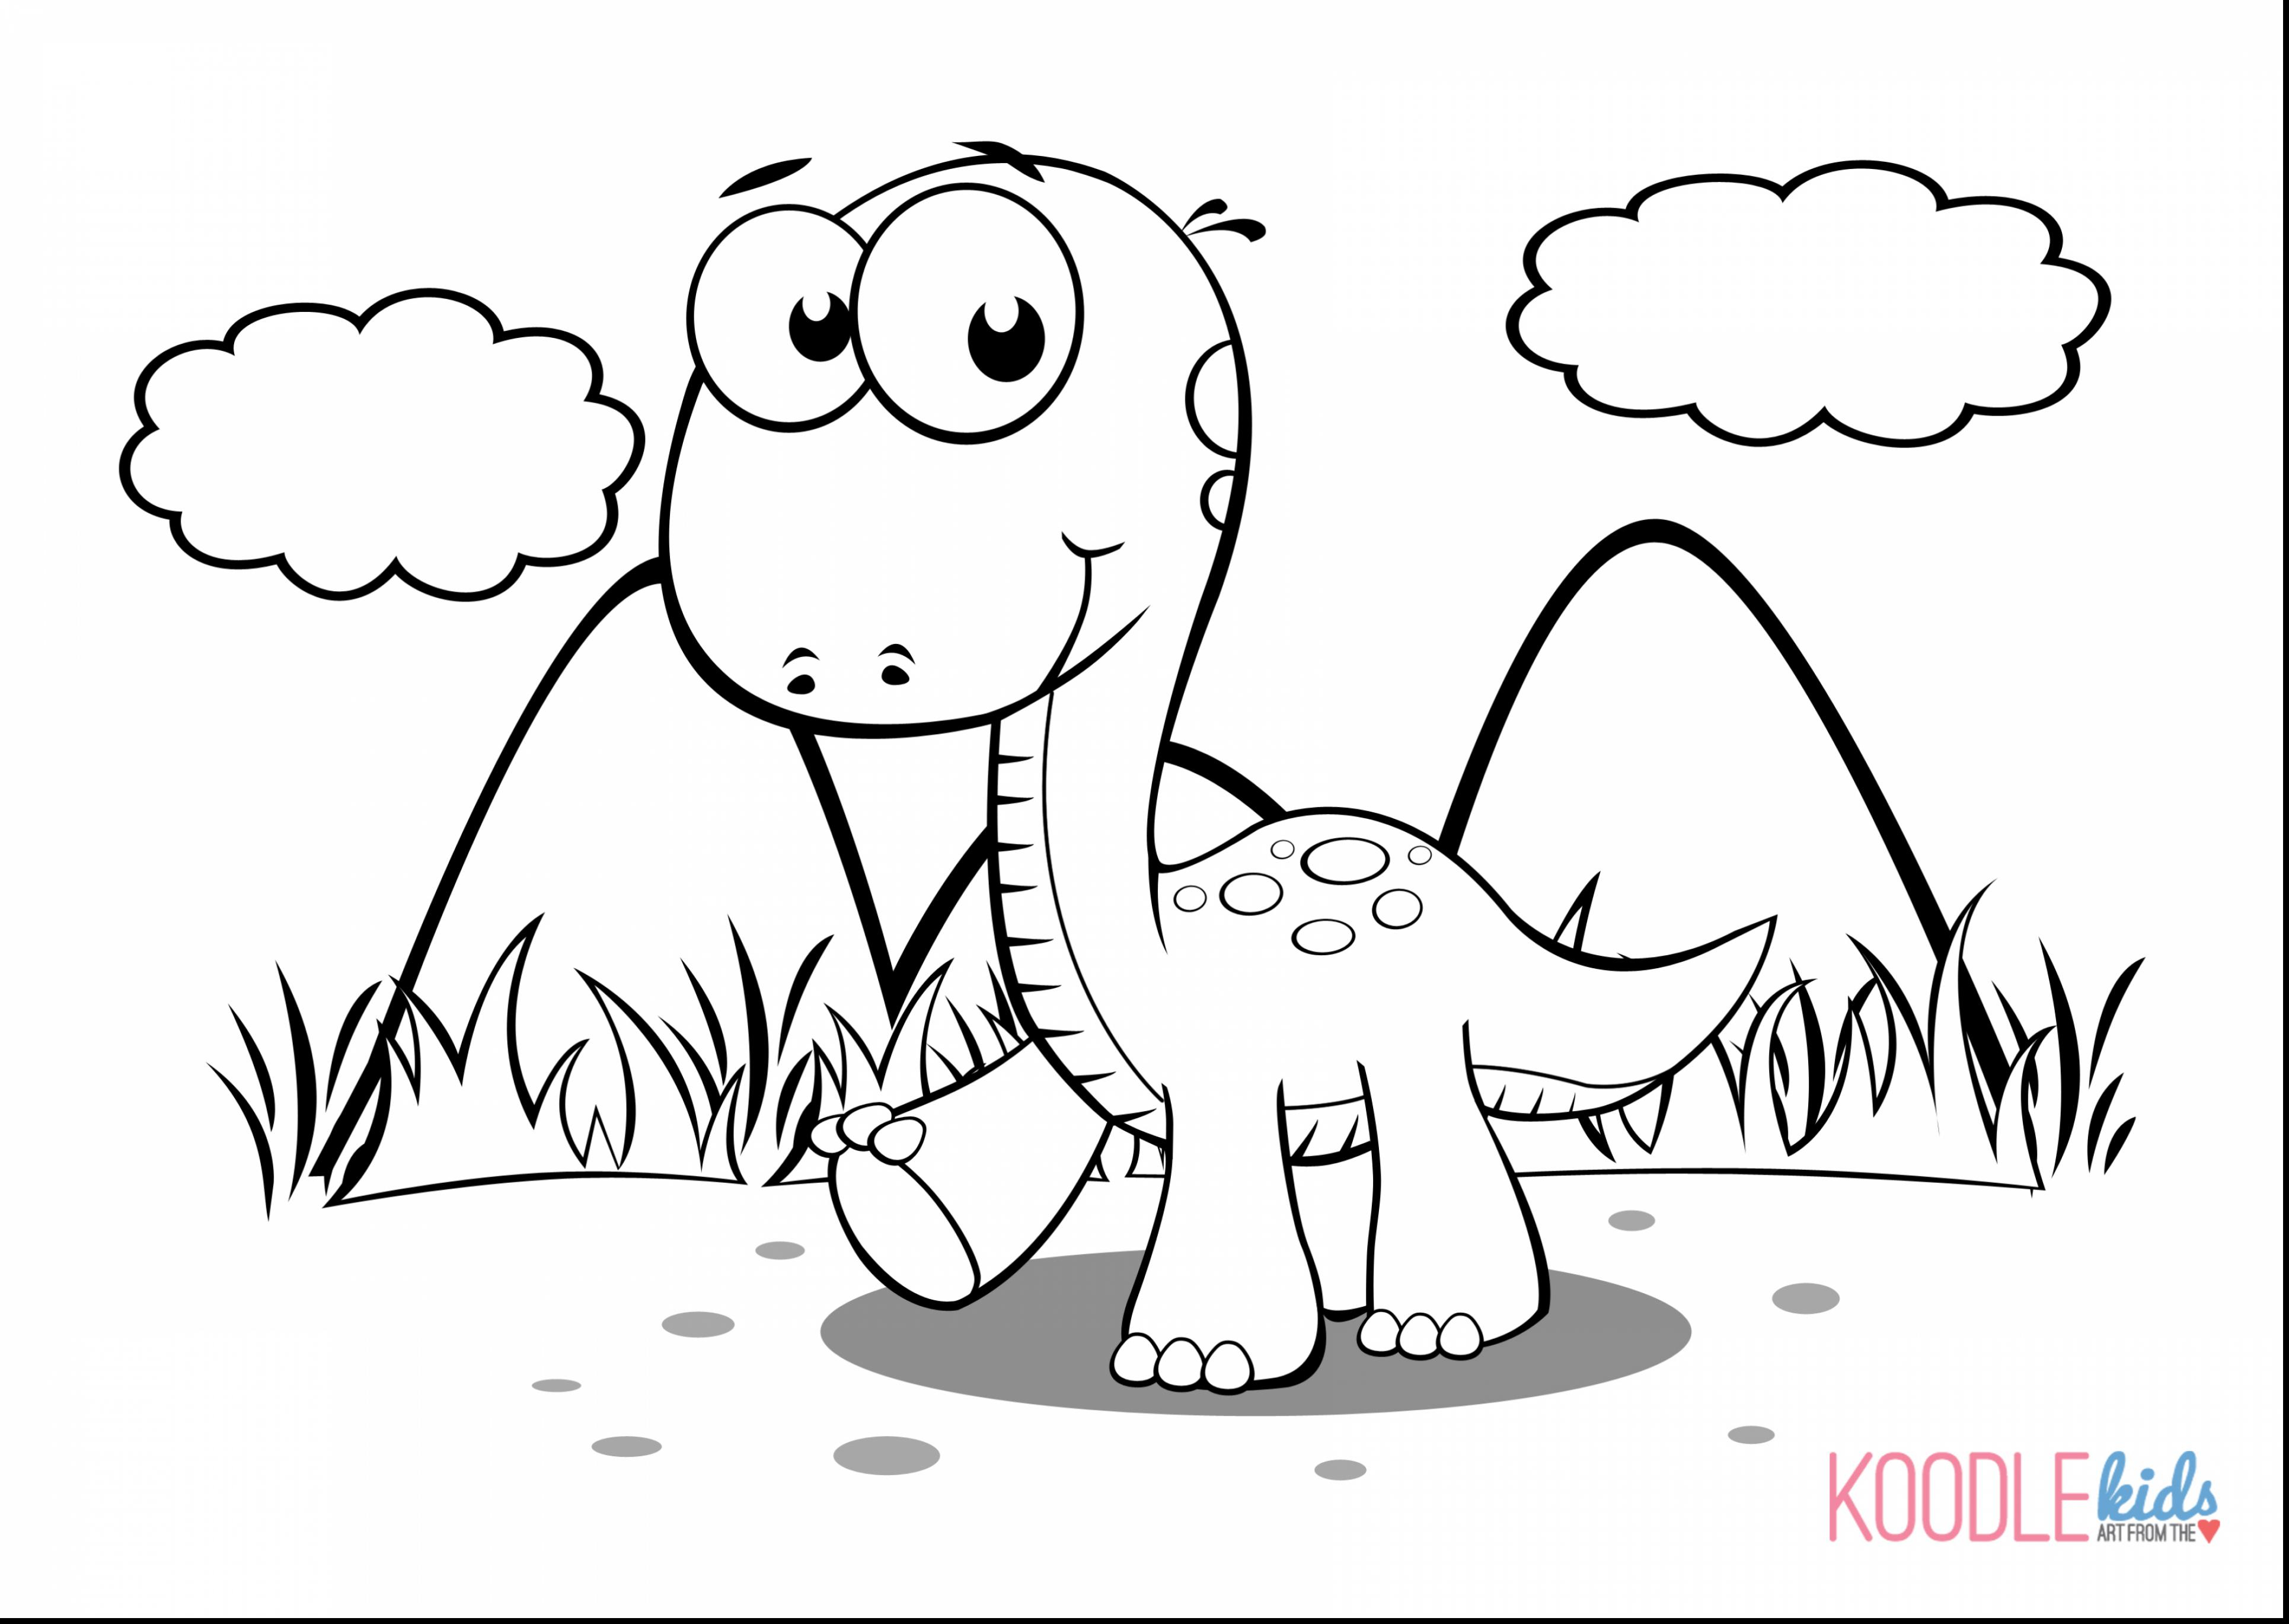 Dinosaur Coloring Pages Free Printable #27115 - Free Printable Dinosaur Coloring Pages